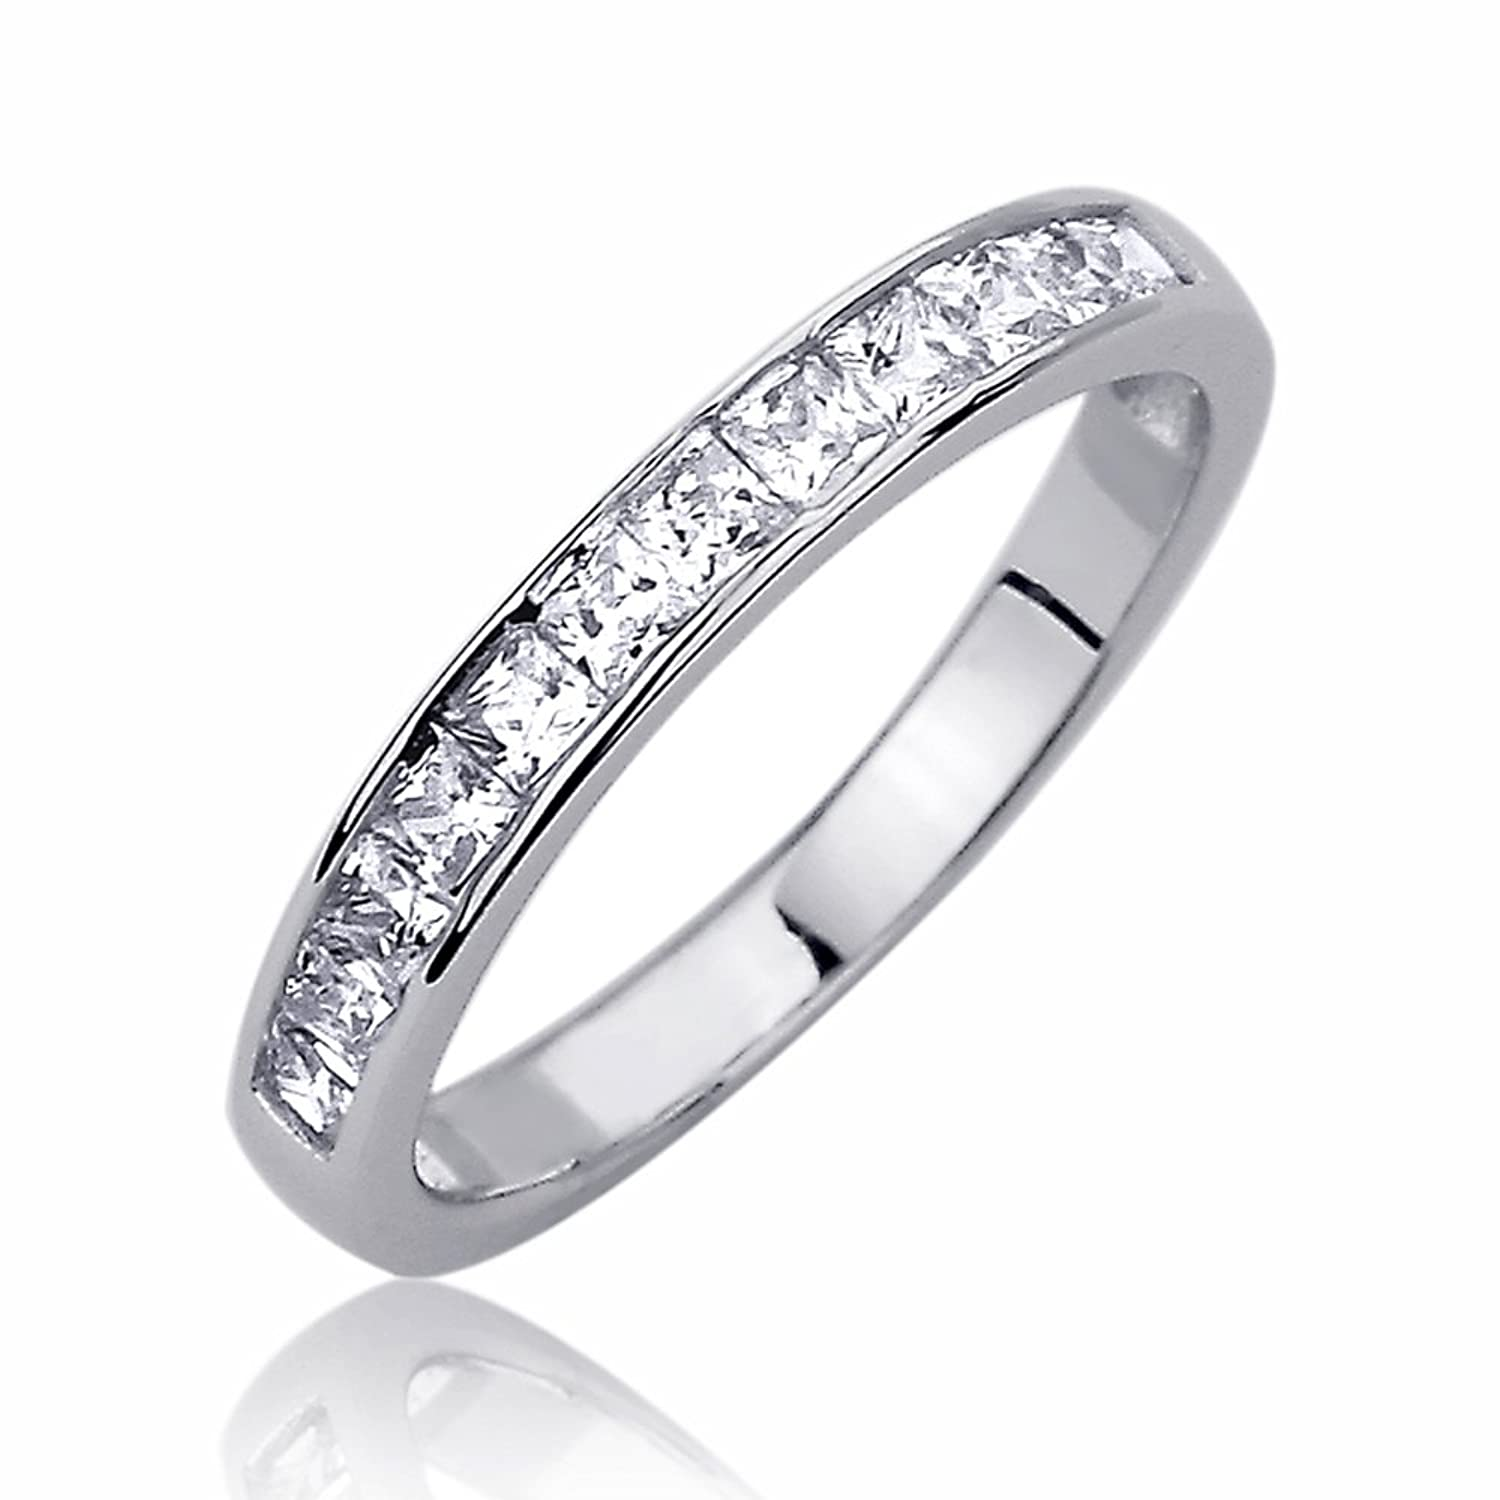 detailed forevermark combines the s with a at mount band co pave engagement ring setting diamond pav four precious rings collection signature solitaire pronged frank